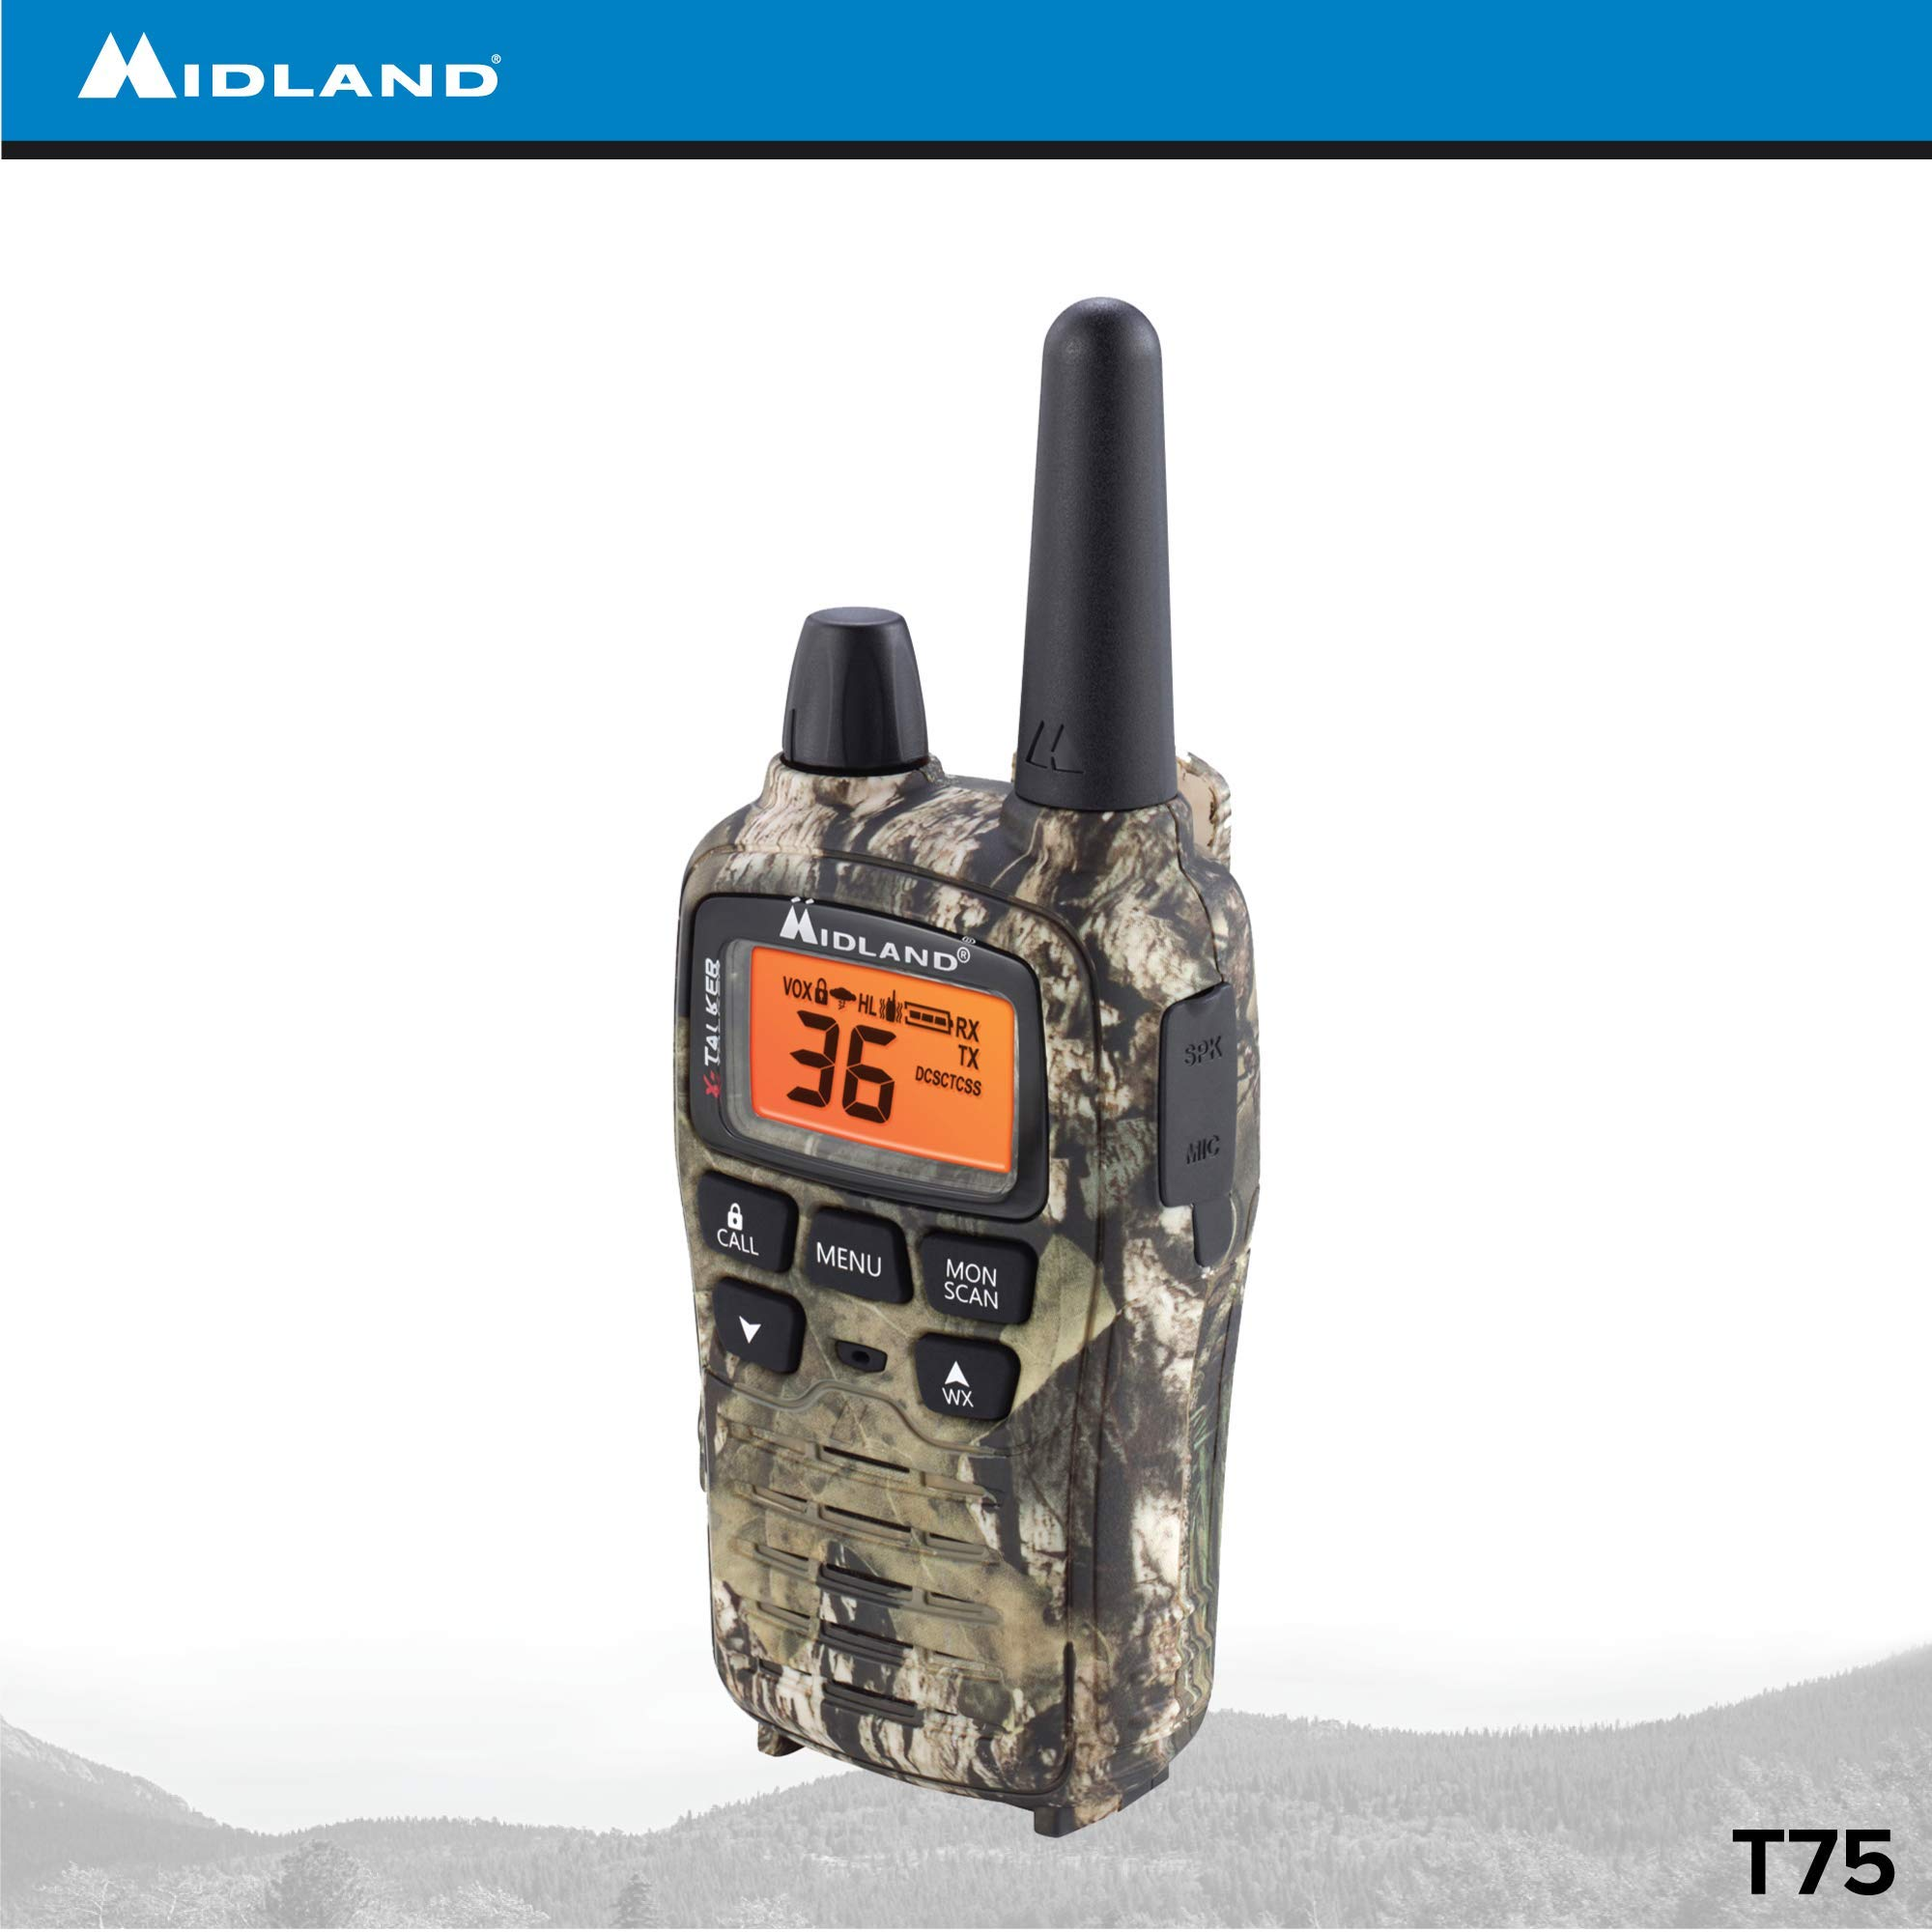 Midland - X-TALKER T75VP3, 36 Channel FRS Two-Way Radio - Up to 38 Mile Range Walkie Talkie, 121 Privacy Codes, & NOAA Weather Scan + Alert (Pair Pack) (Mossy Oak Camo) by Midland (Image #8)